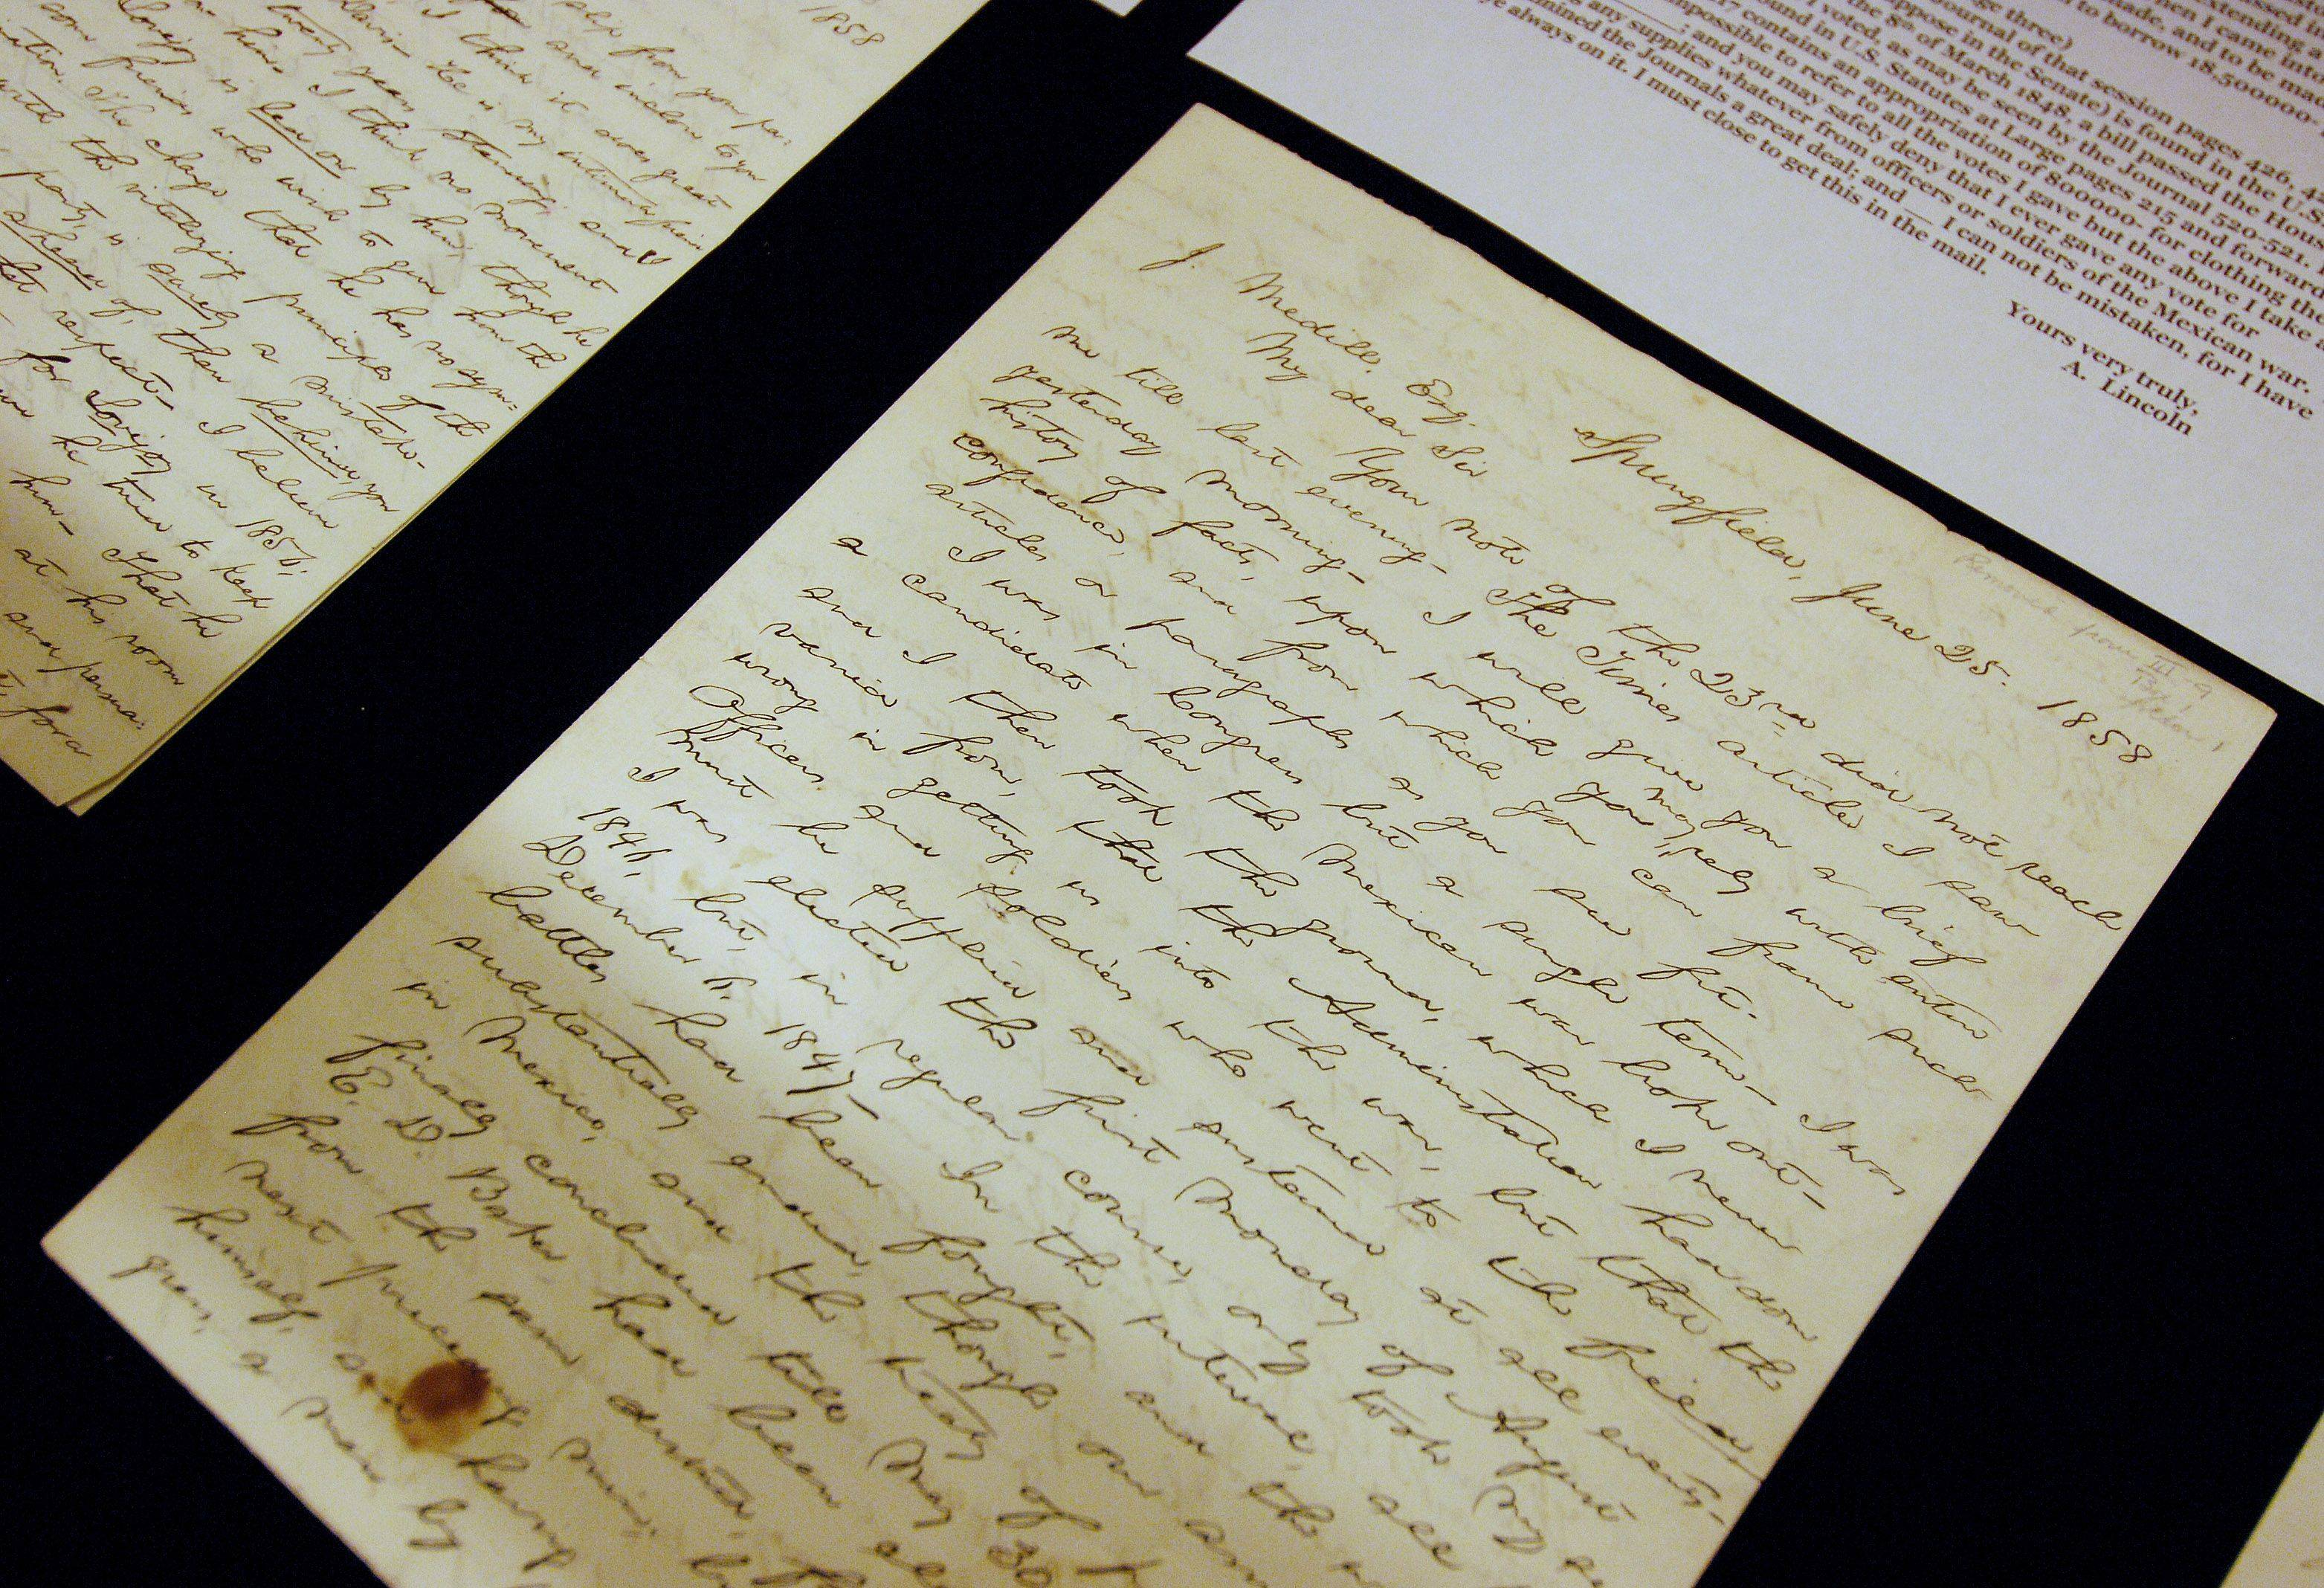 The Colonel Robert R. McCormick Research center has original Abraham Lincoln letters on display in the reading room. The letters were written to Robert R. McCormick's grandfather, Joseph Medill who ran the Chicago Tribune in the 1850s and was a supporter of Abraham Lincoln.